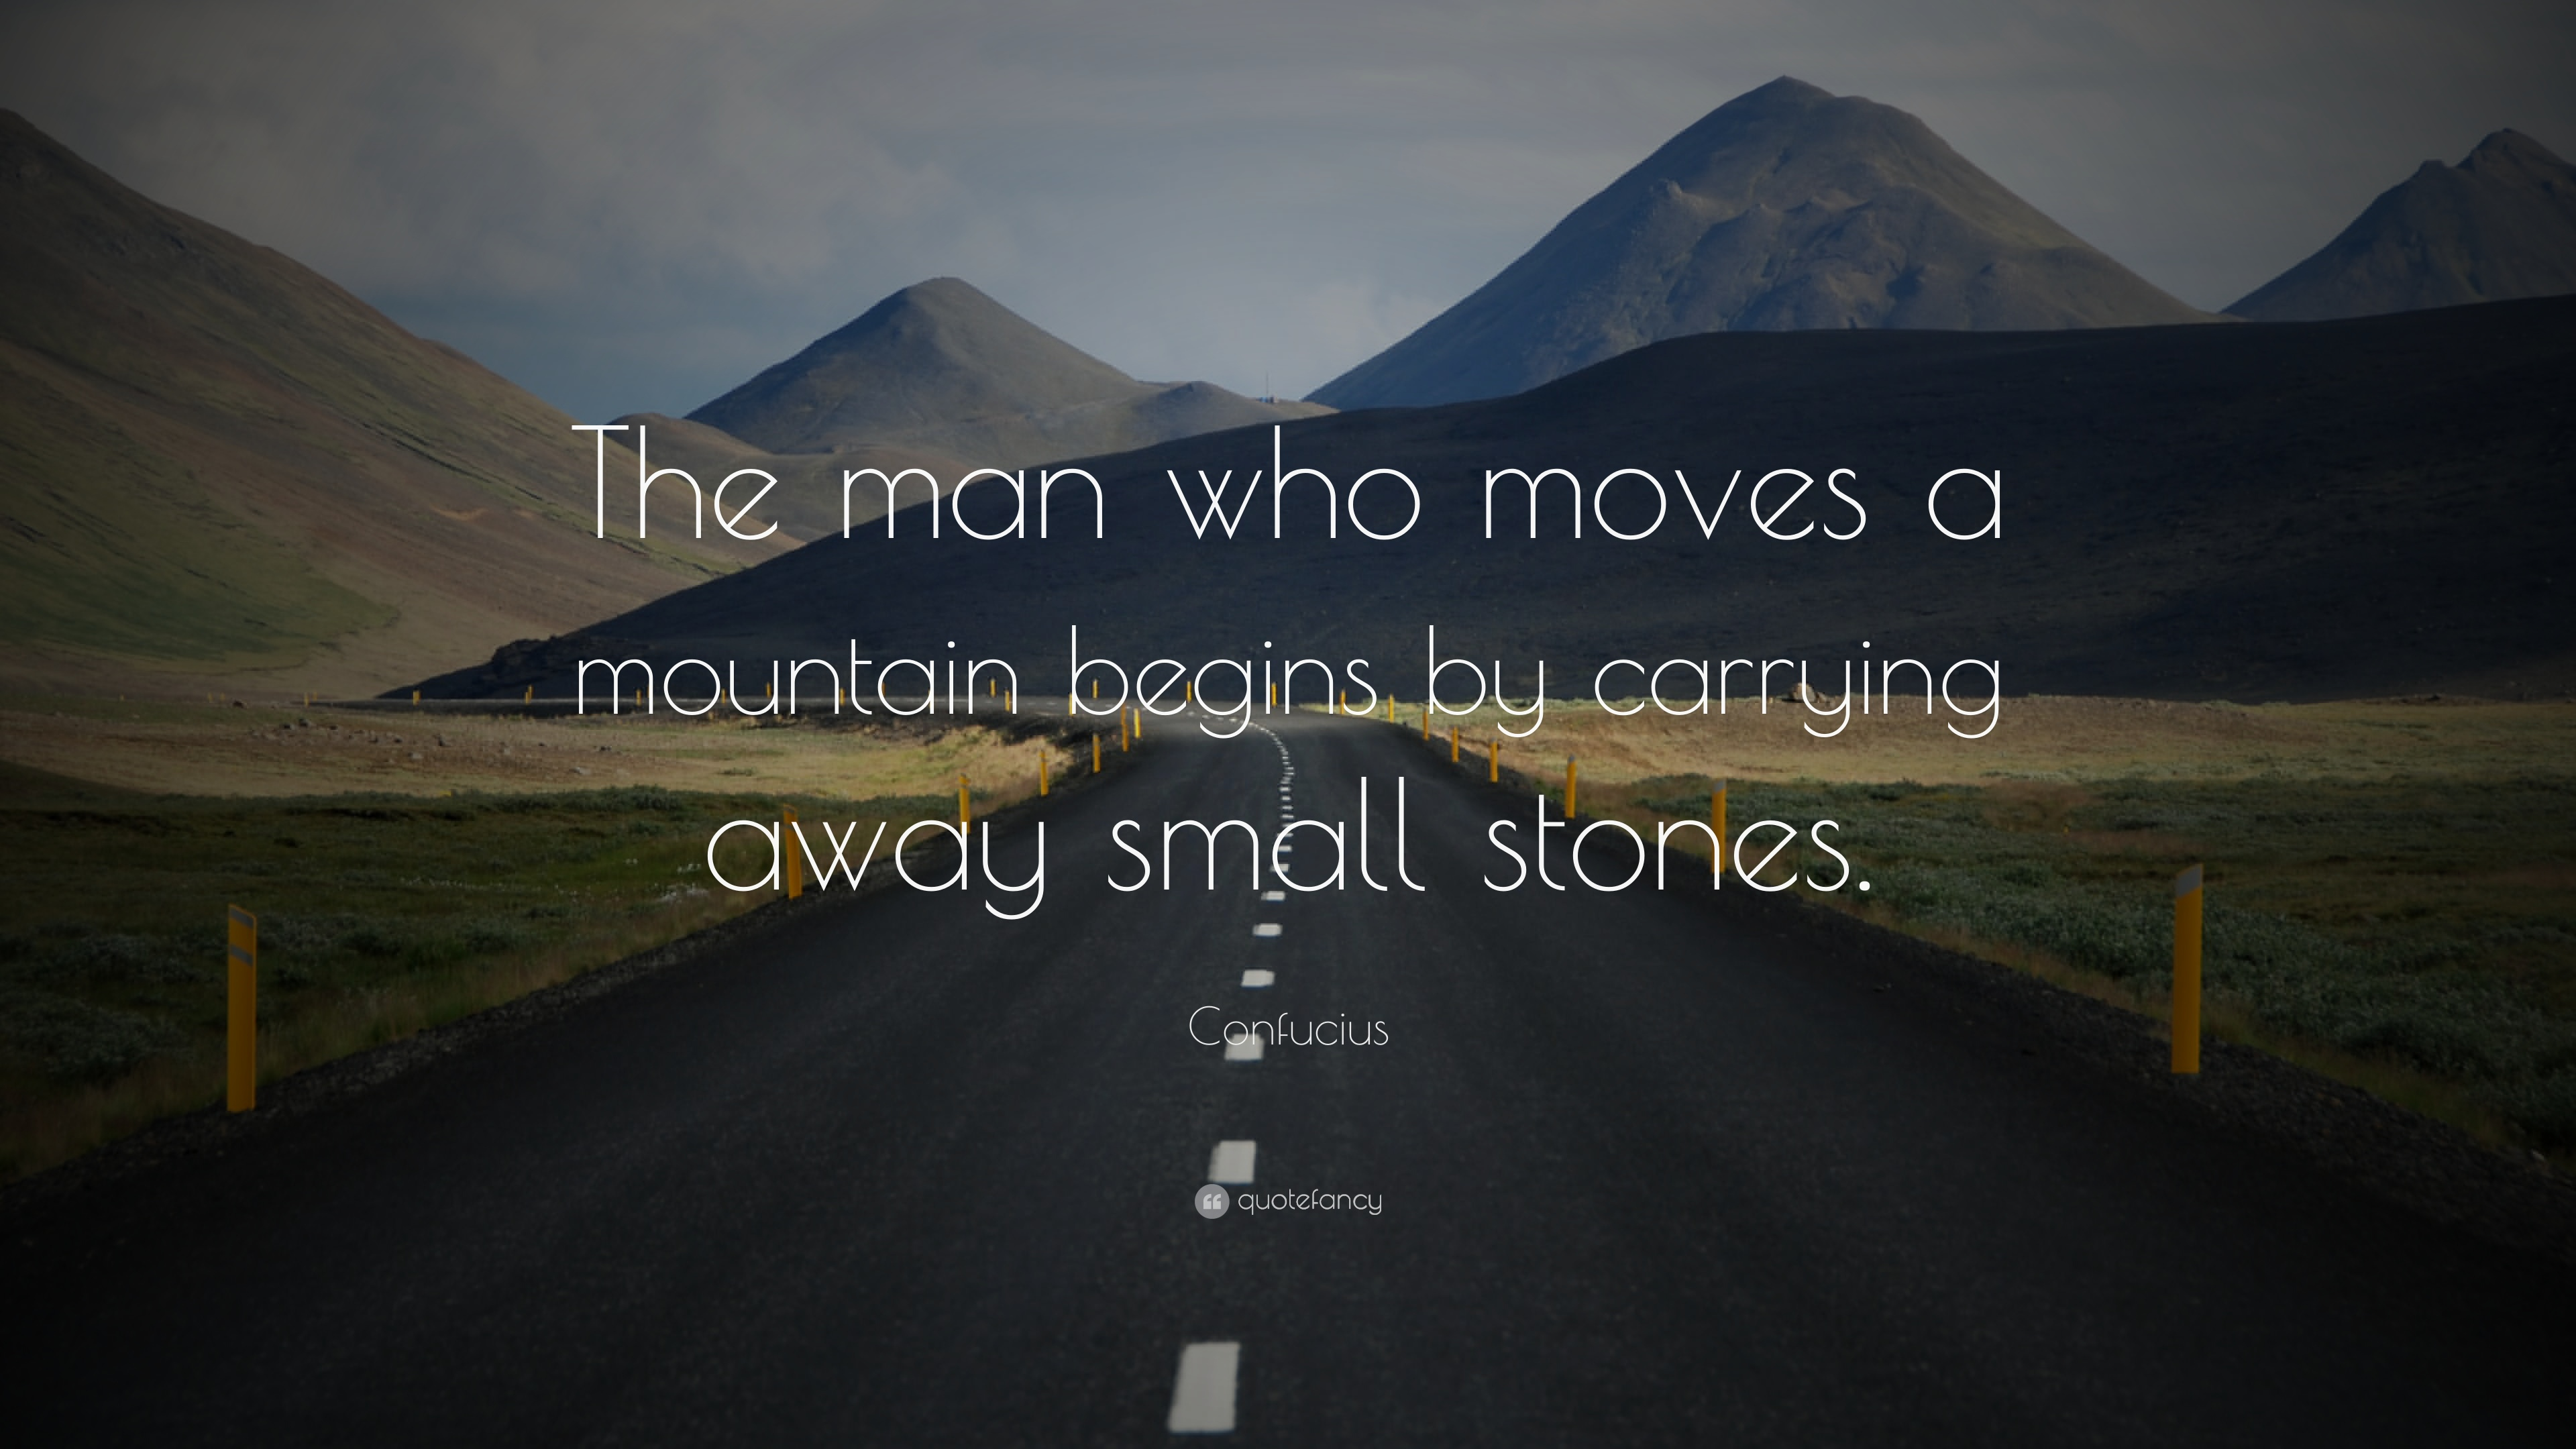 Consistency Quotes Wallpaper Confucius Quote The Man Who Moves A Mountain Begins By